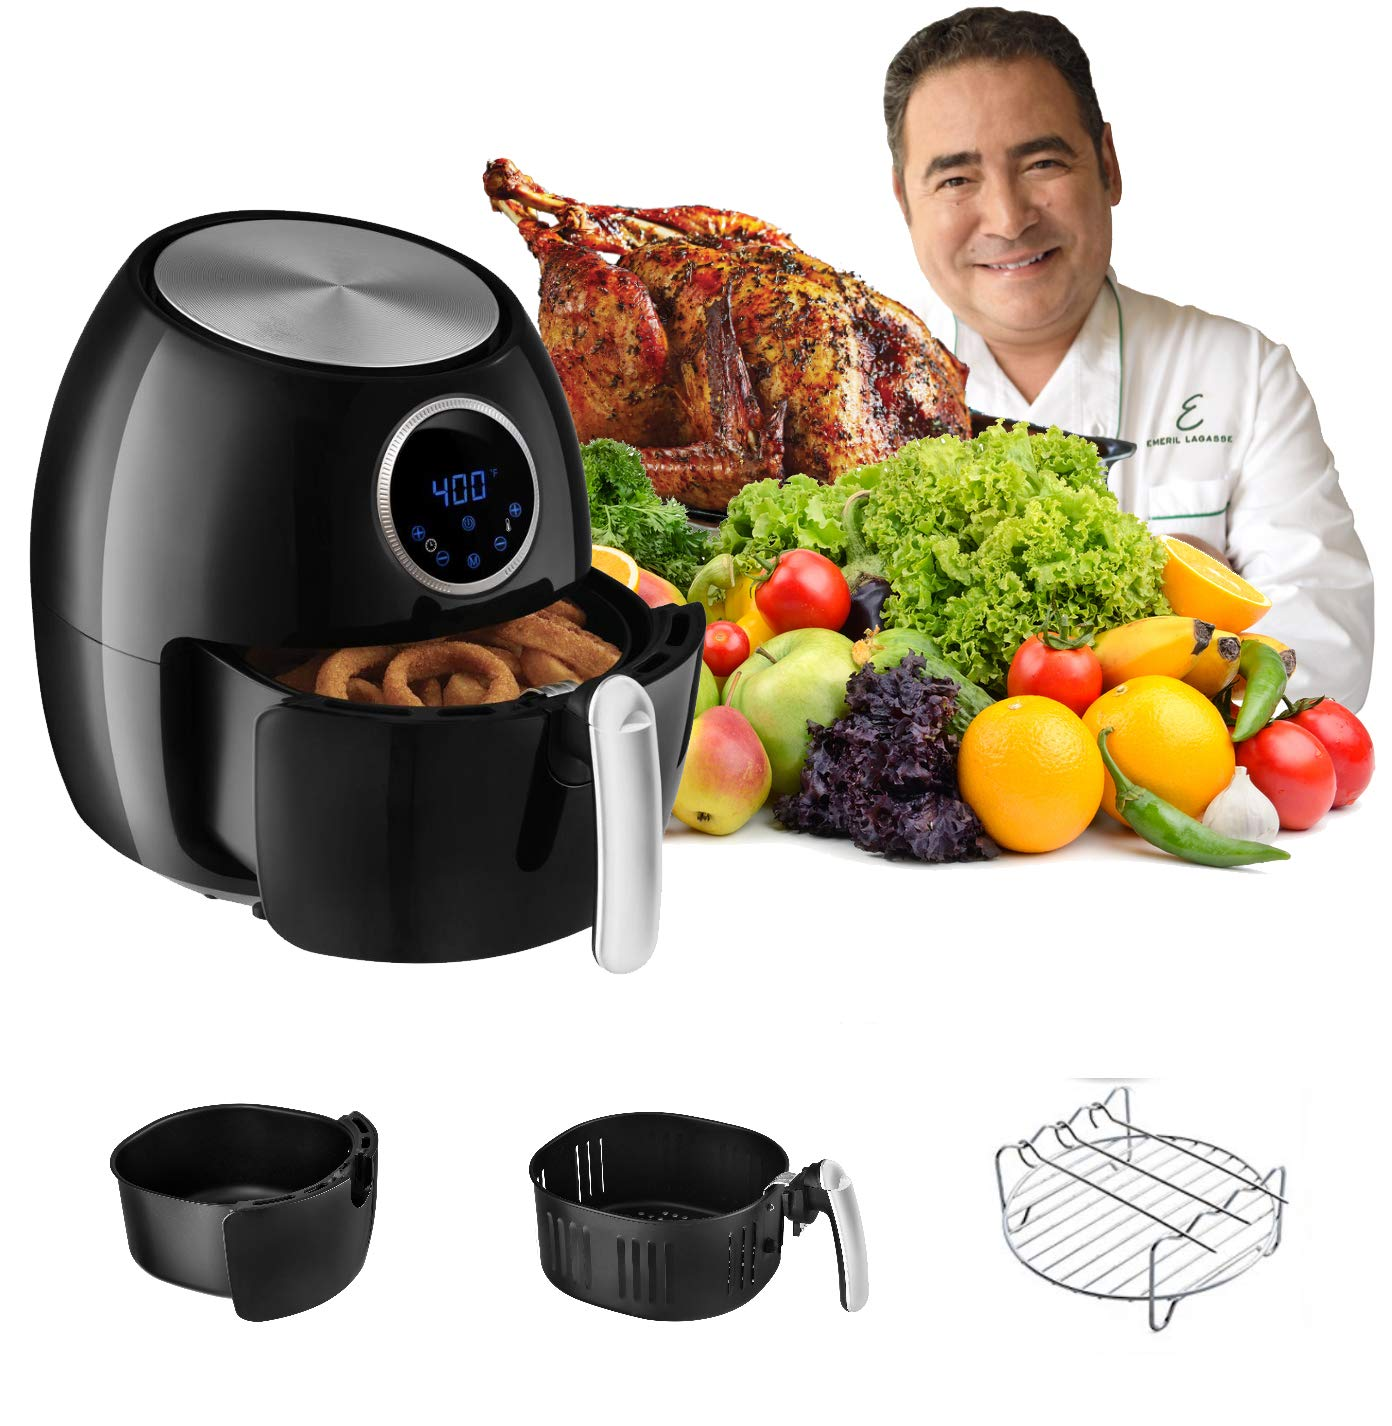 Emeril Lagasse 5.3 QT XL Digital Hot Air Fryer w/Rack, Skewers, Recipe Cards | (5.3 qt.) Oil Less Electric Food Cooker | 7 Pre-Programmed Cook Settings | Removable Basket by Emeril Lagasse (Image #3)